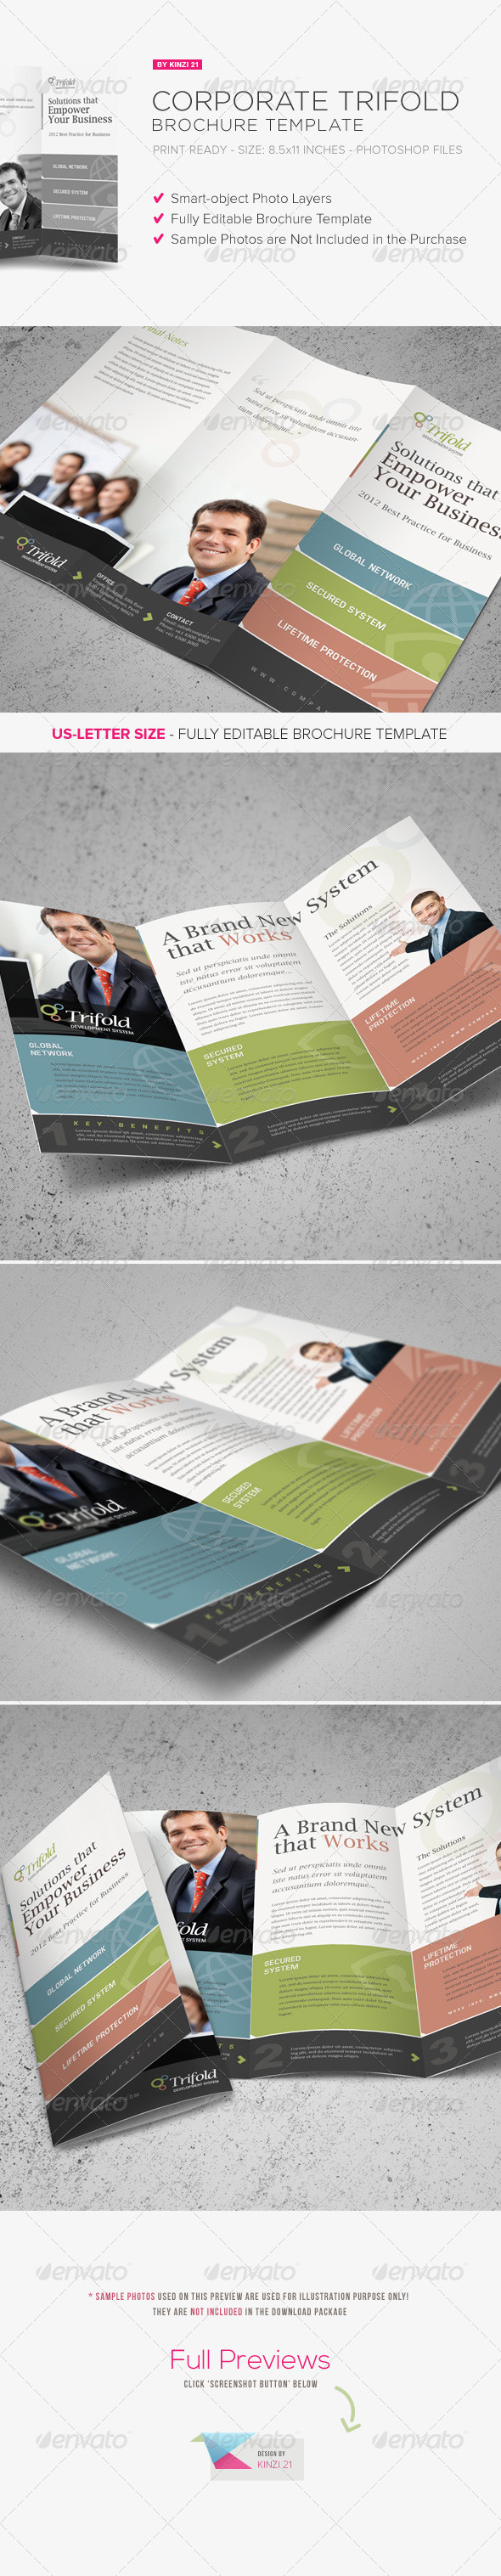 Corporate Trifold Brochure Template - Corporate Brochures